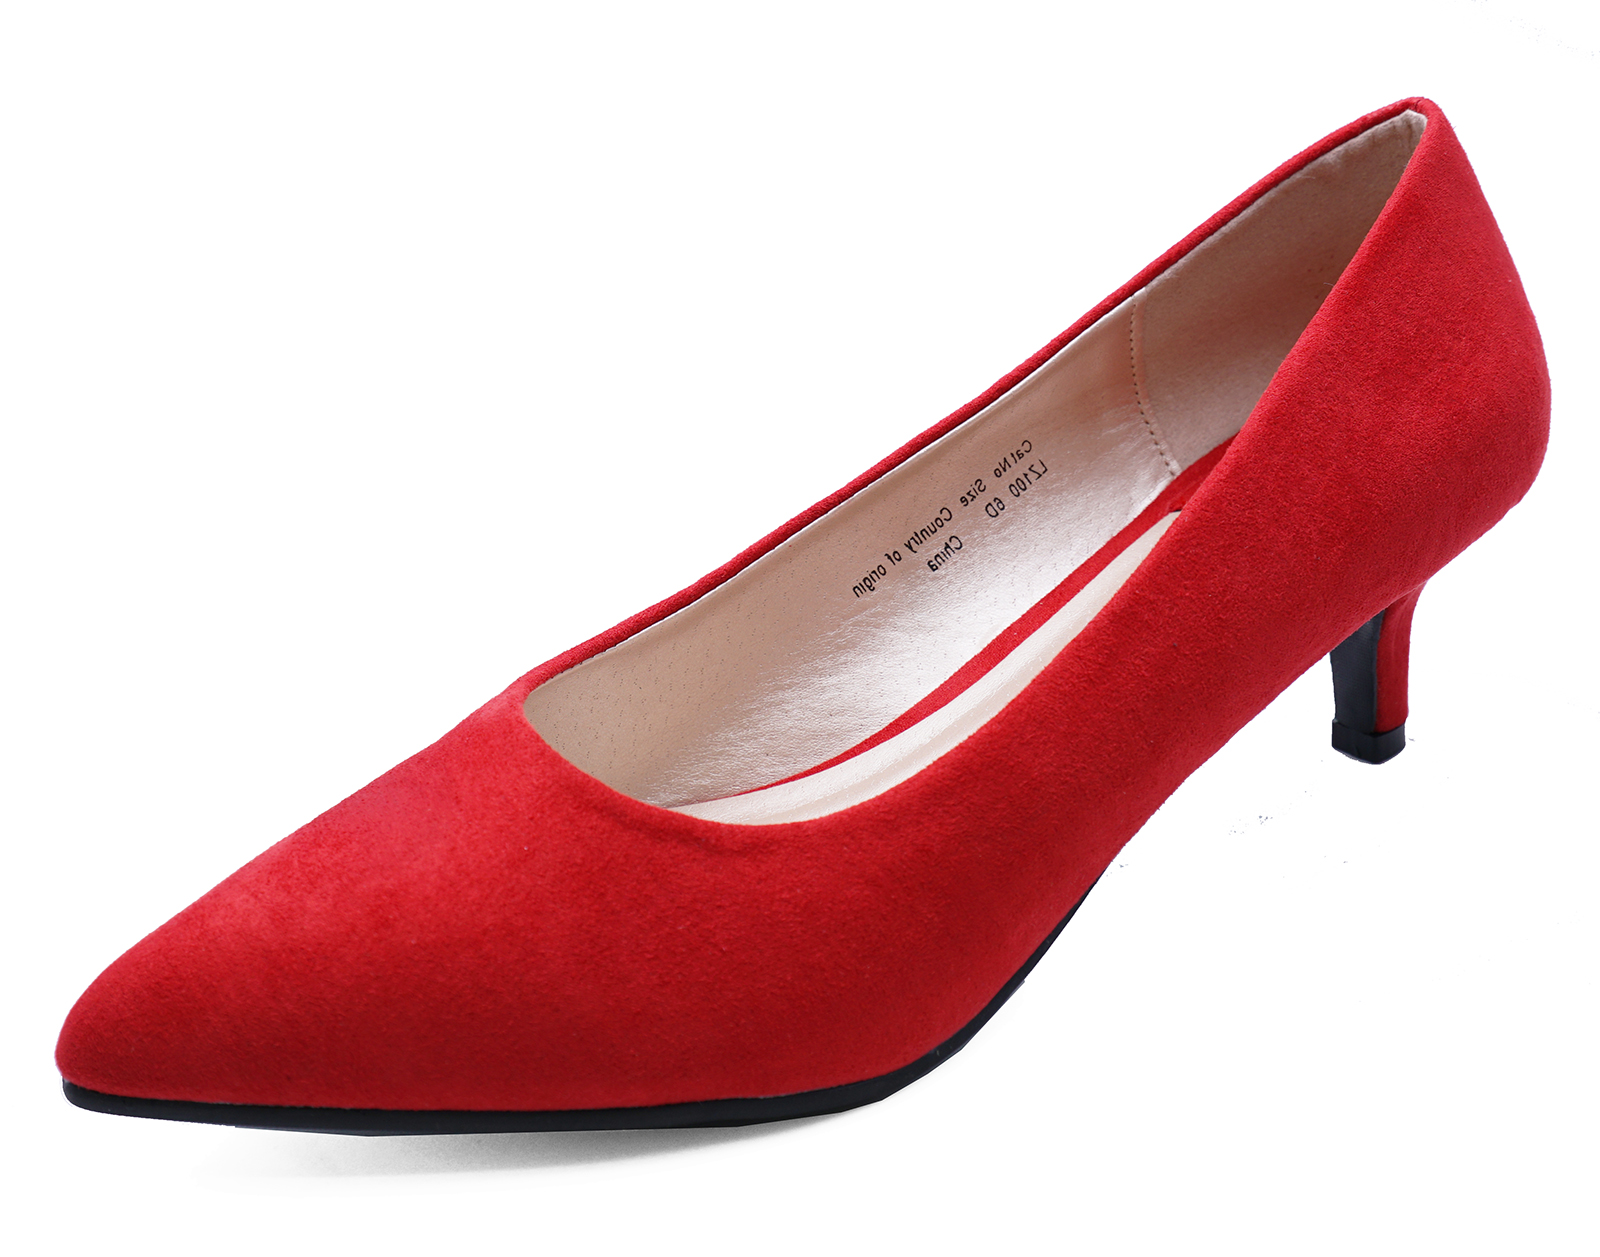 ccdb959baba Sentinel LADIES RED SLIP-ON KITTEN LOW-HEEL SMART WORK CASUAL COMFY COURT  SHOES SIZES